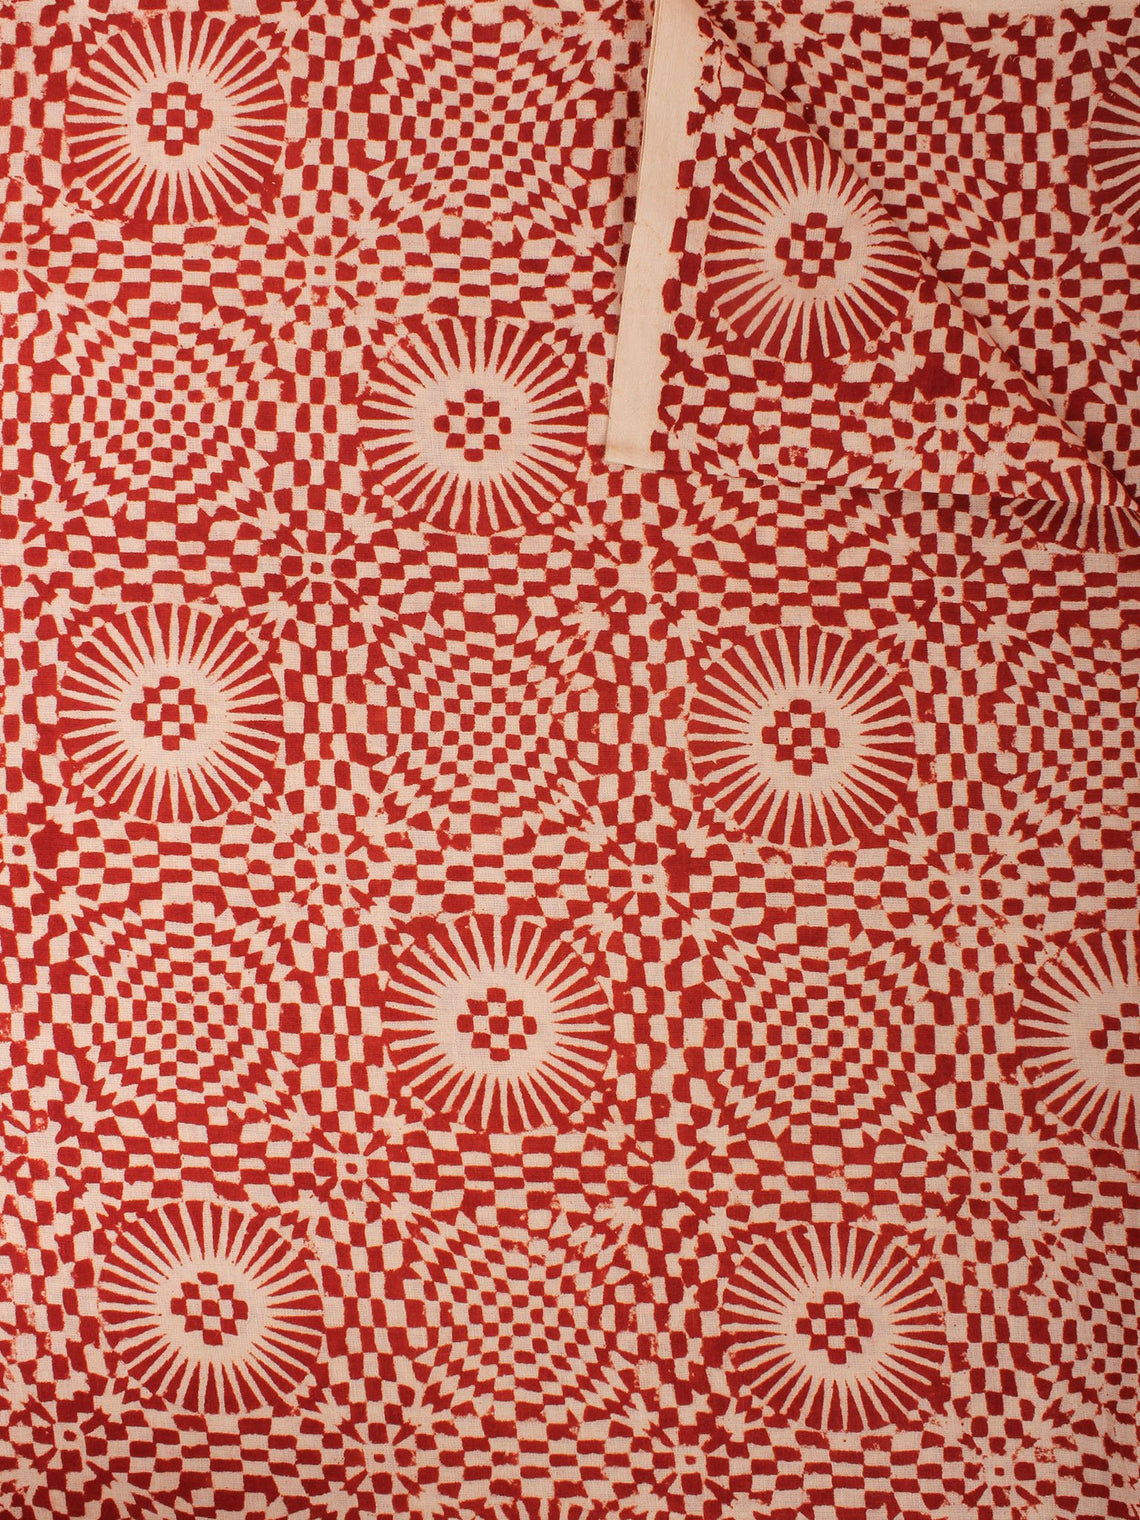 Beige Maroon Hand Block Printed Cotton Cambric Fabric Per Meter - F0916457